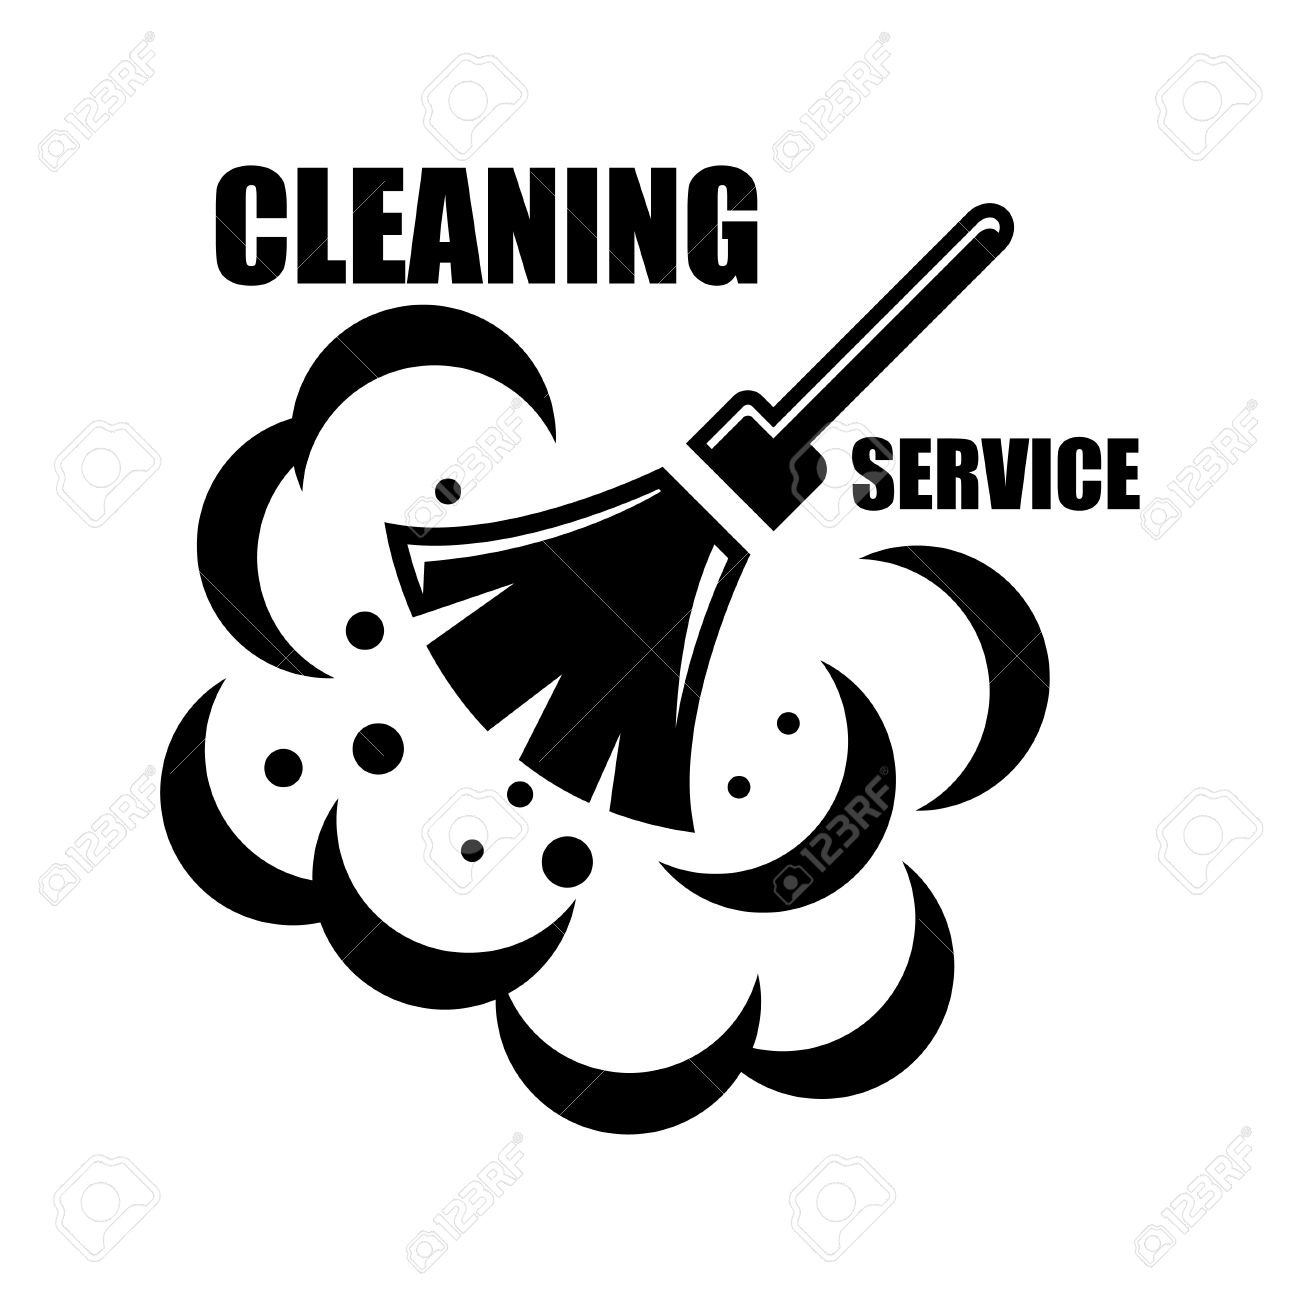 Cleaning Service Clipart Free.